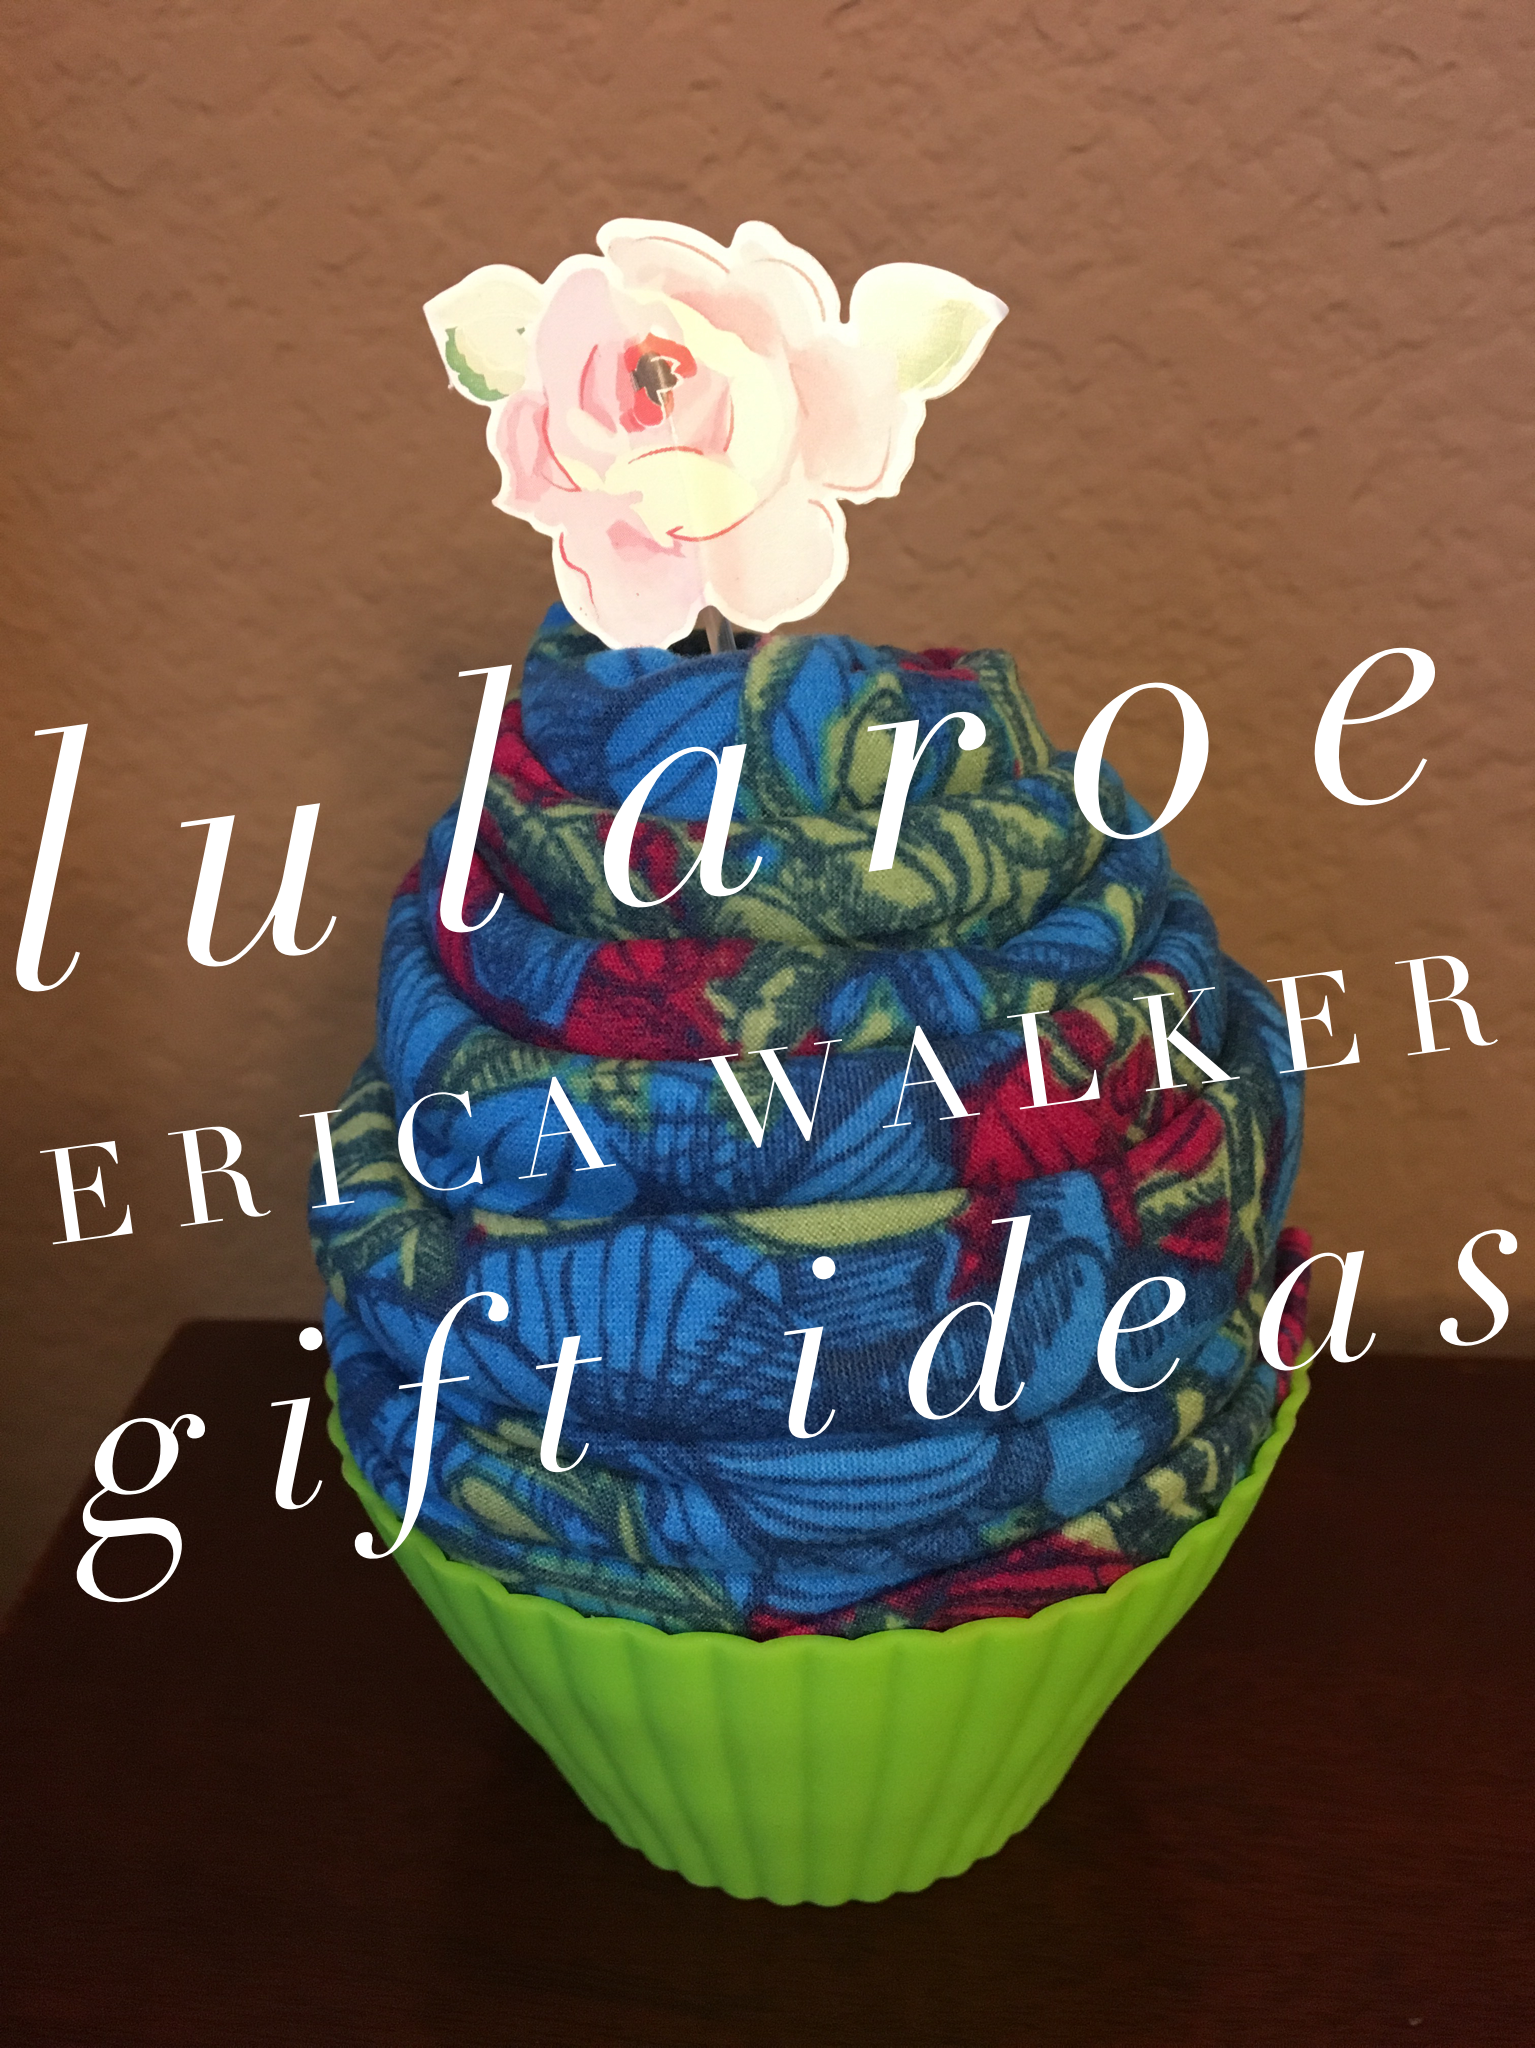 Cute Lularoe Legging Gift Ideas! Cupcakes!